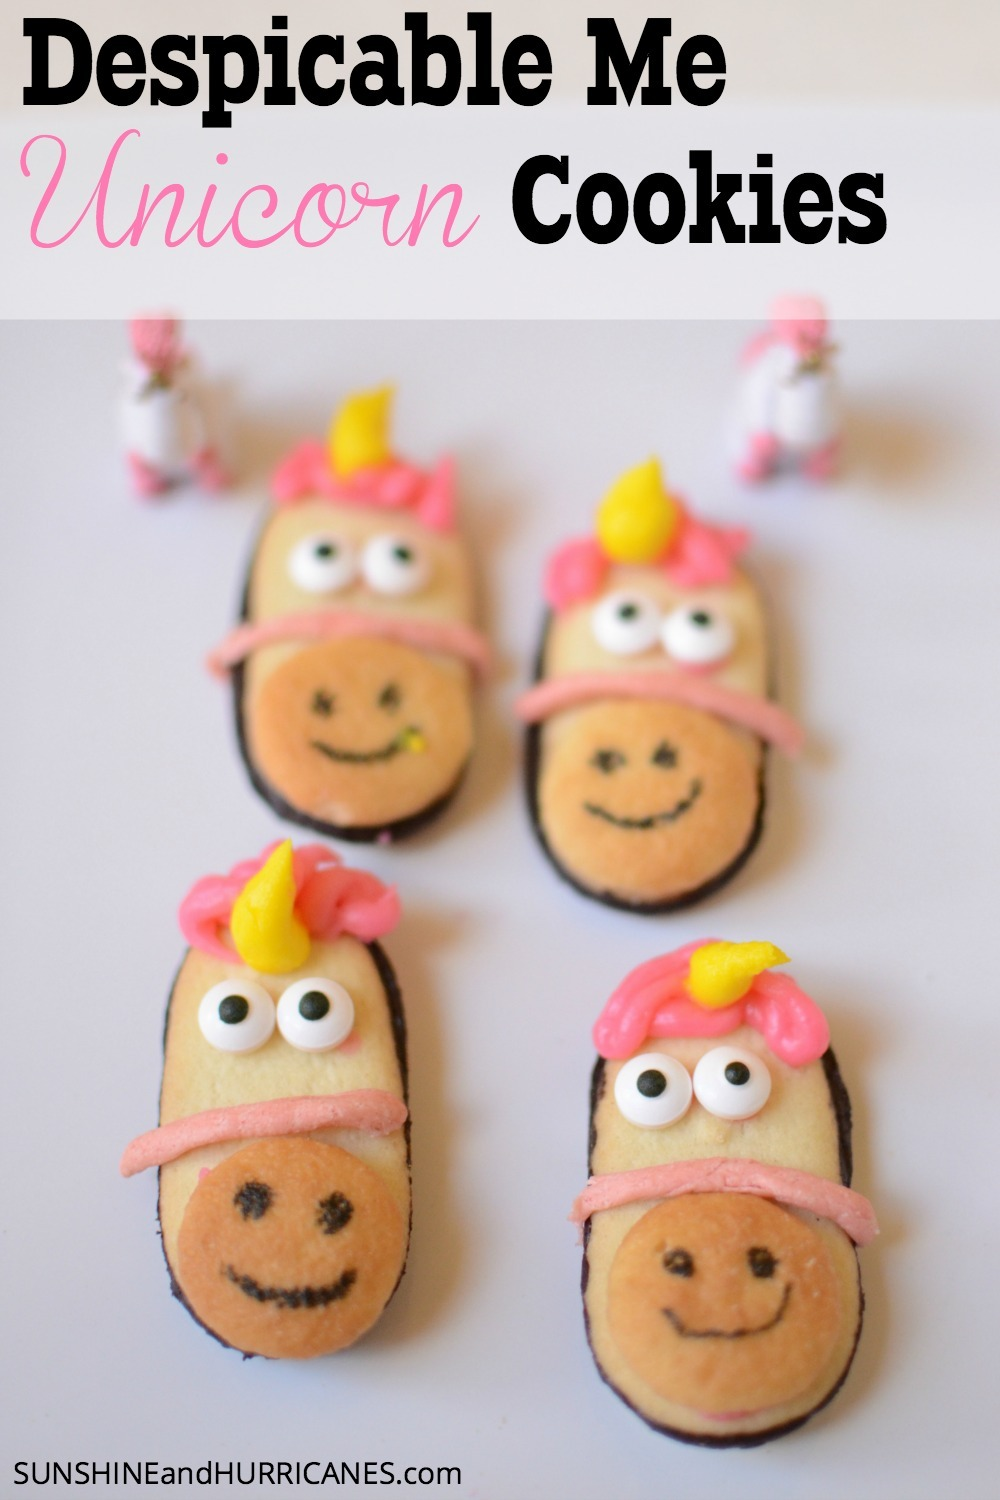 Planning a Despicable Me or a Minion Birthday party? These adorable unicorn cookies from the Despicable Me movie are easy to make and totally adorable. They'll be the talk of the festivities. Despicable Me Unicorn Cookies. SunshineandHurricanes.com